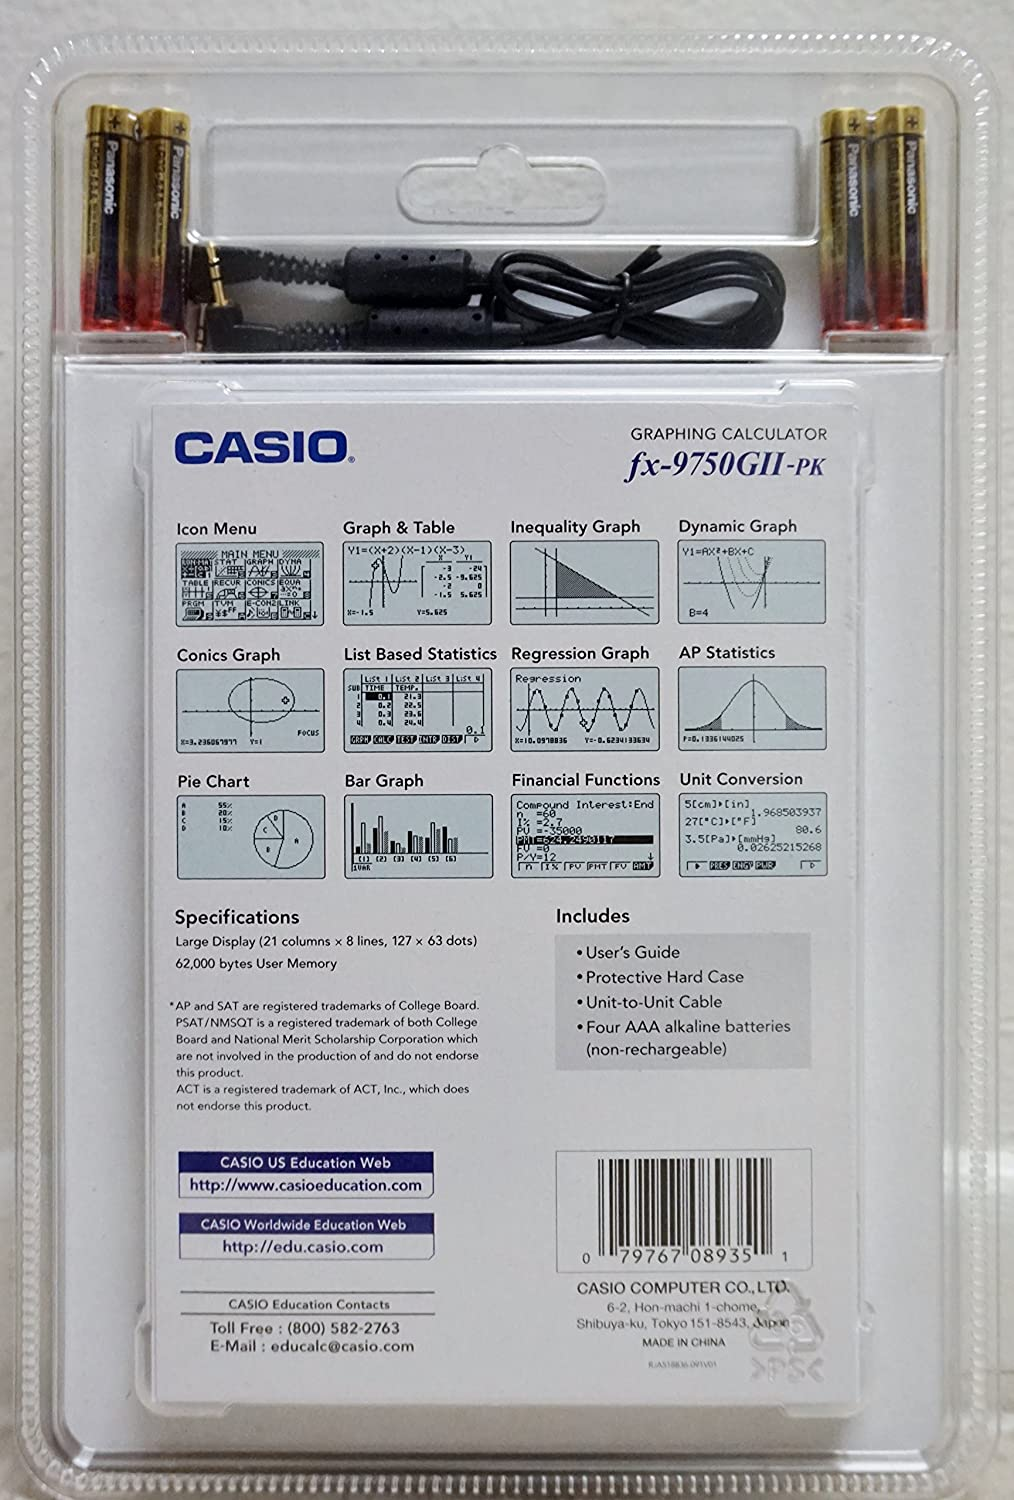 Casio fx-9750GII Graphing Calculator with icon based menu